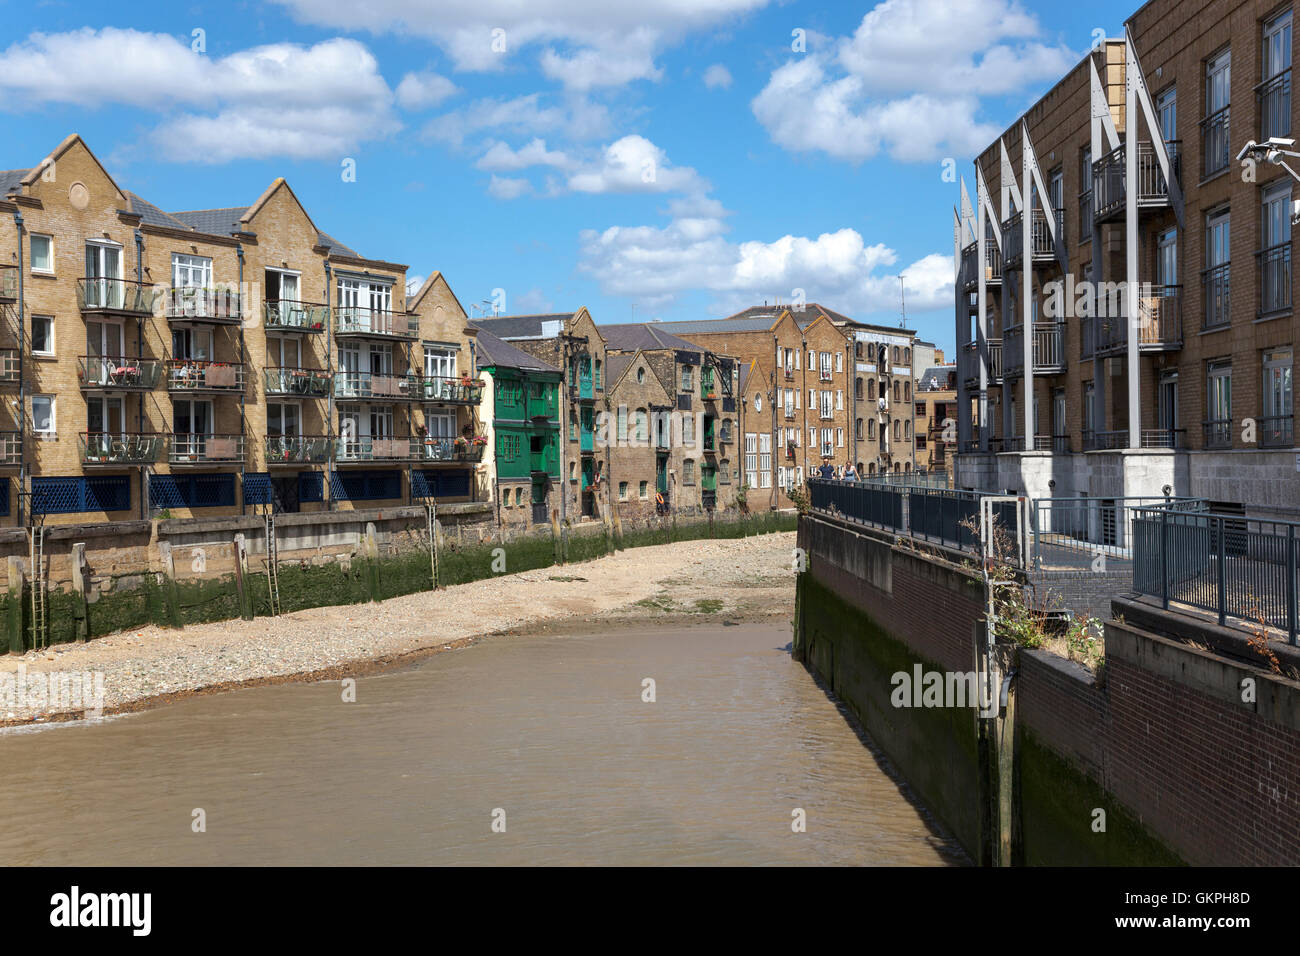 Old shipping warehouses on the Thames converted into residential apartment buildings, Canary Wharf / Limehouse, - Stock Image